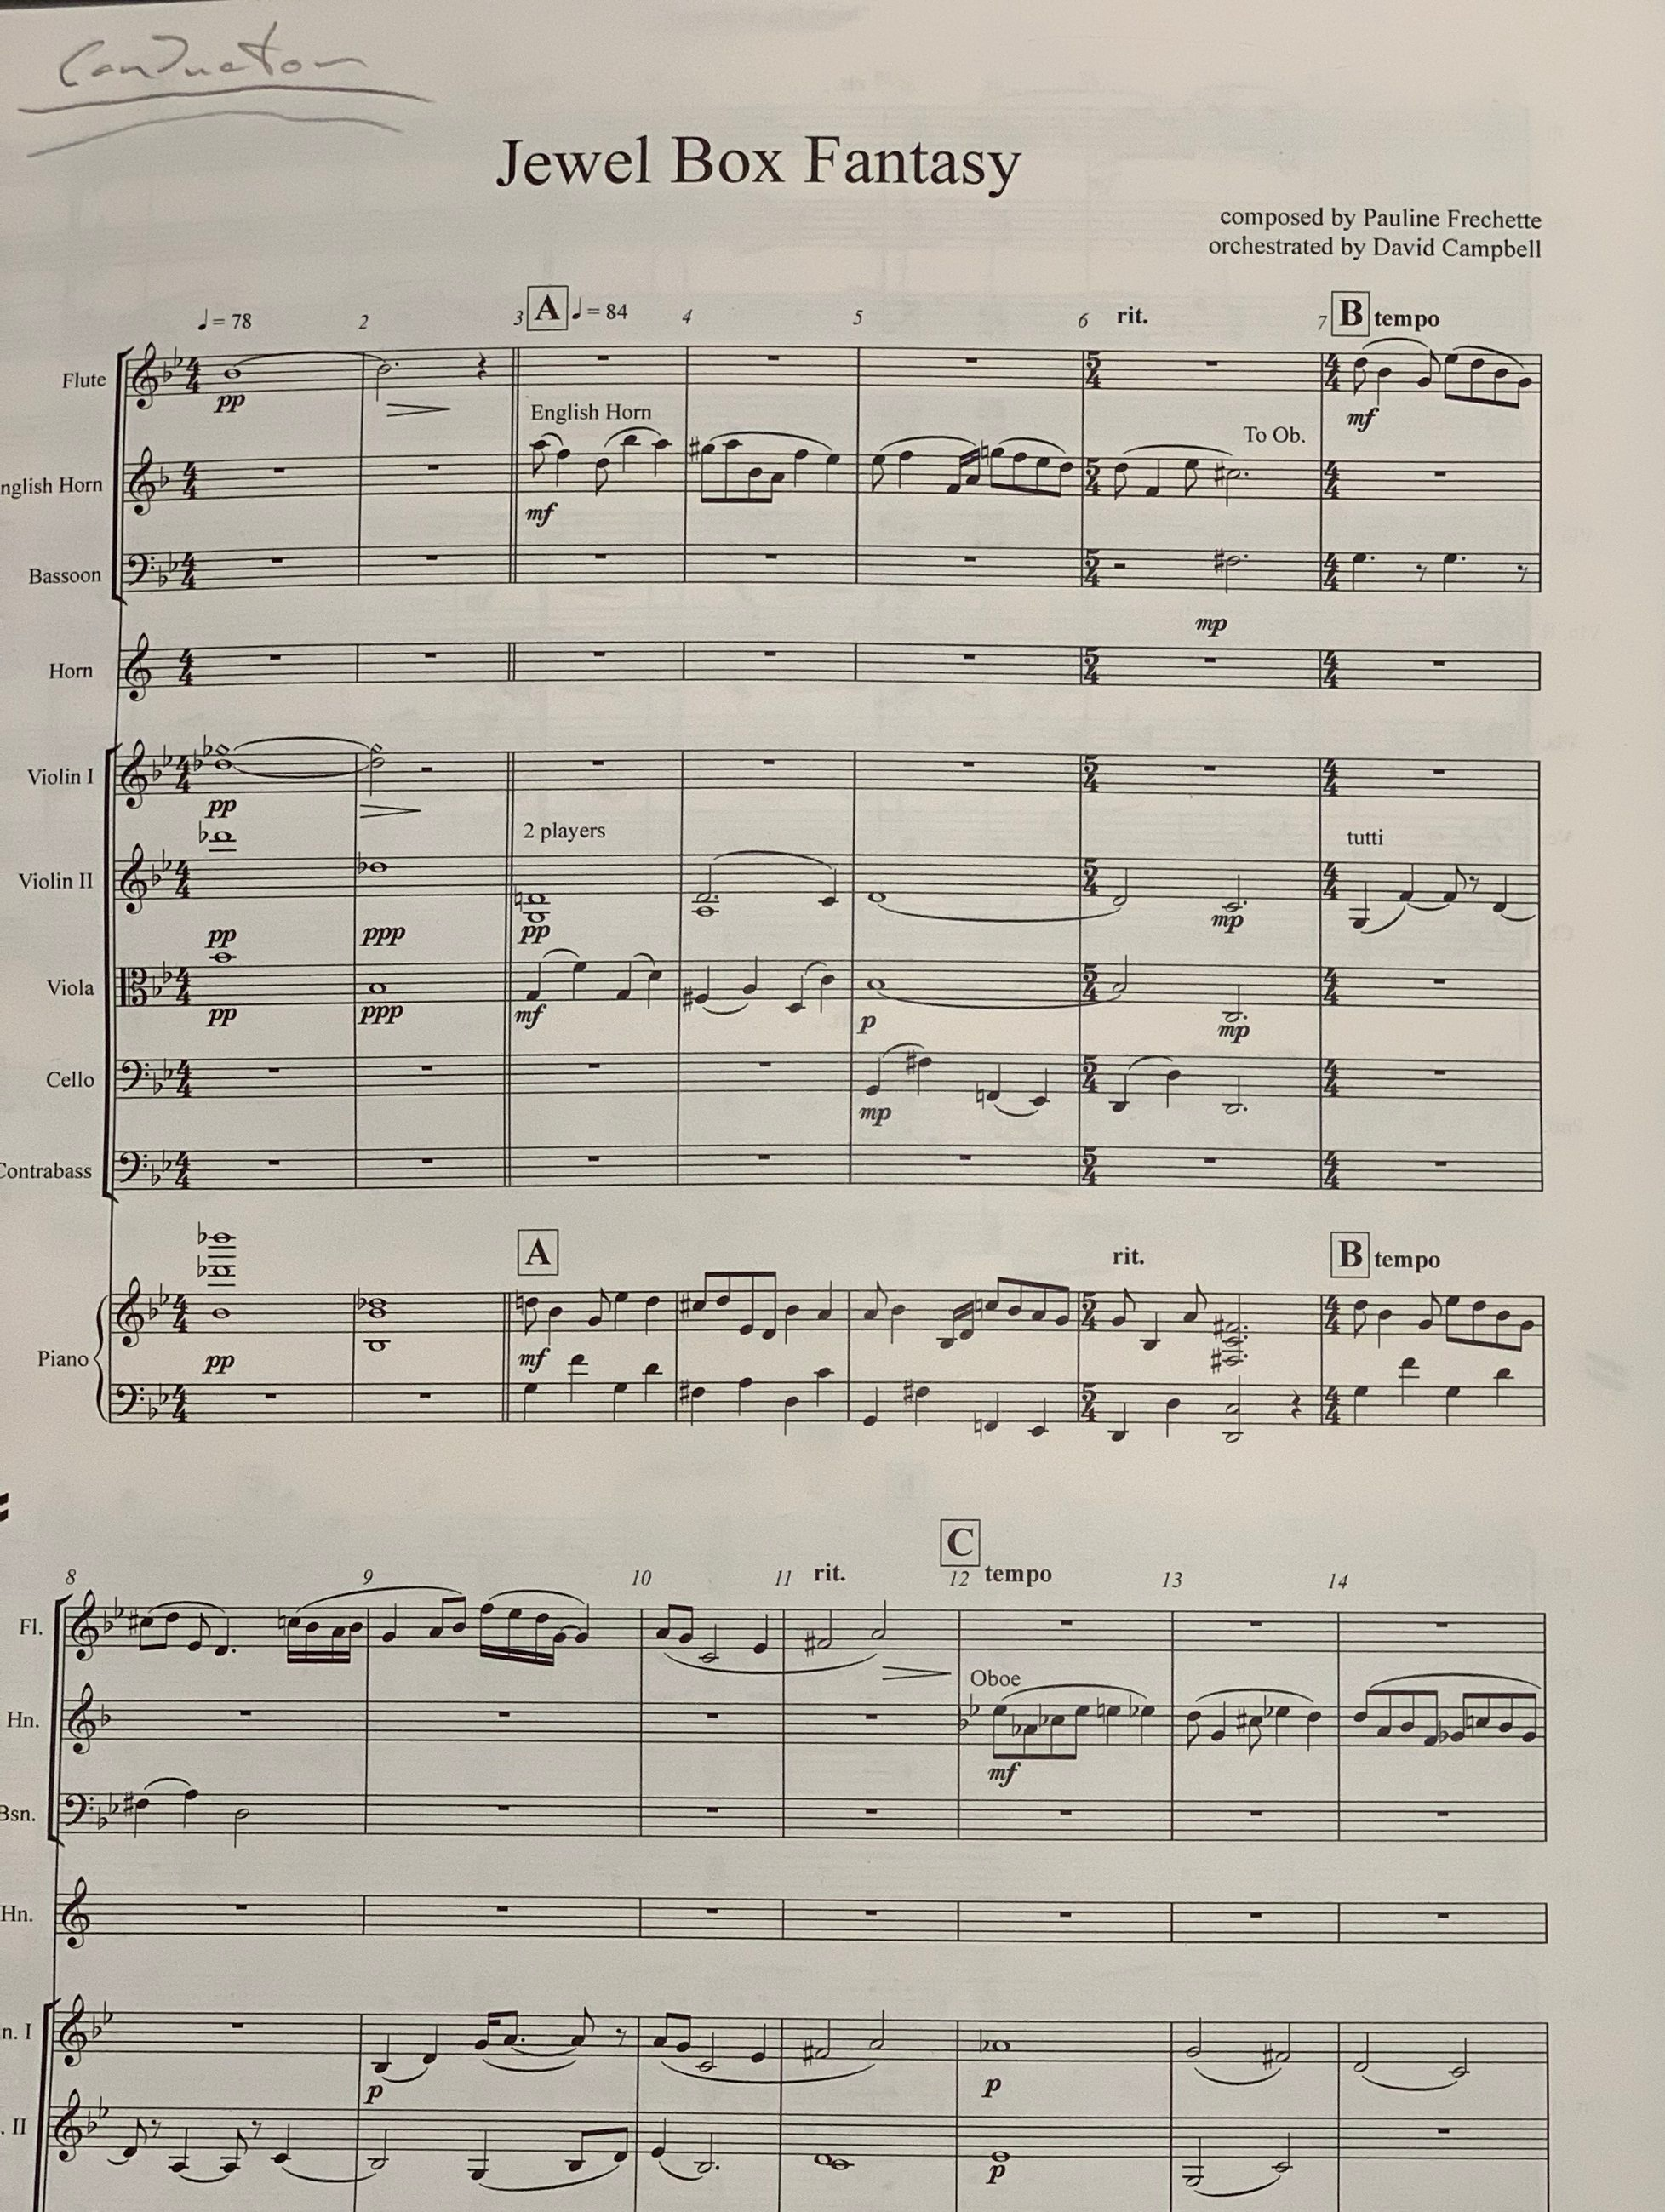 Jewel Box Fantasy score